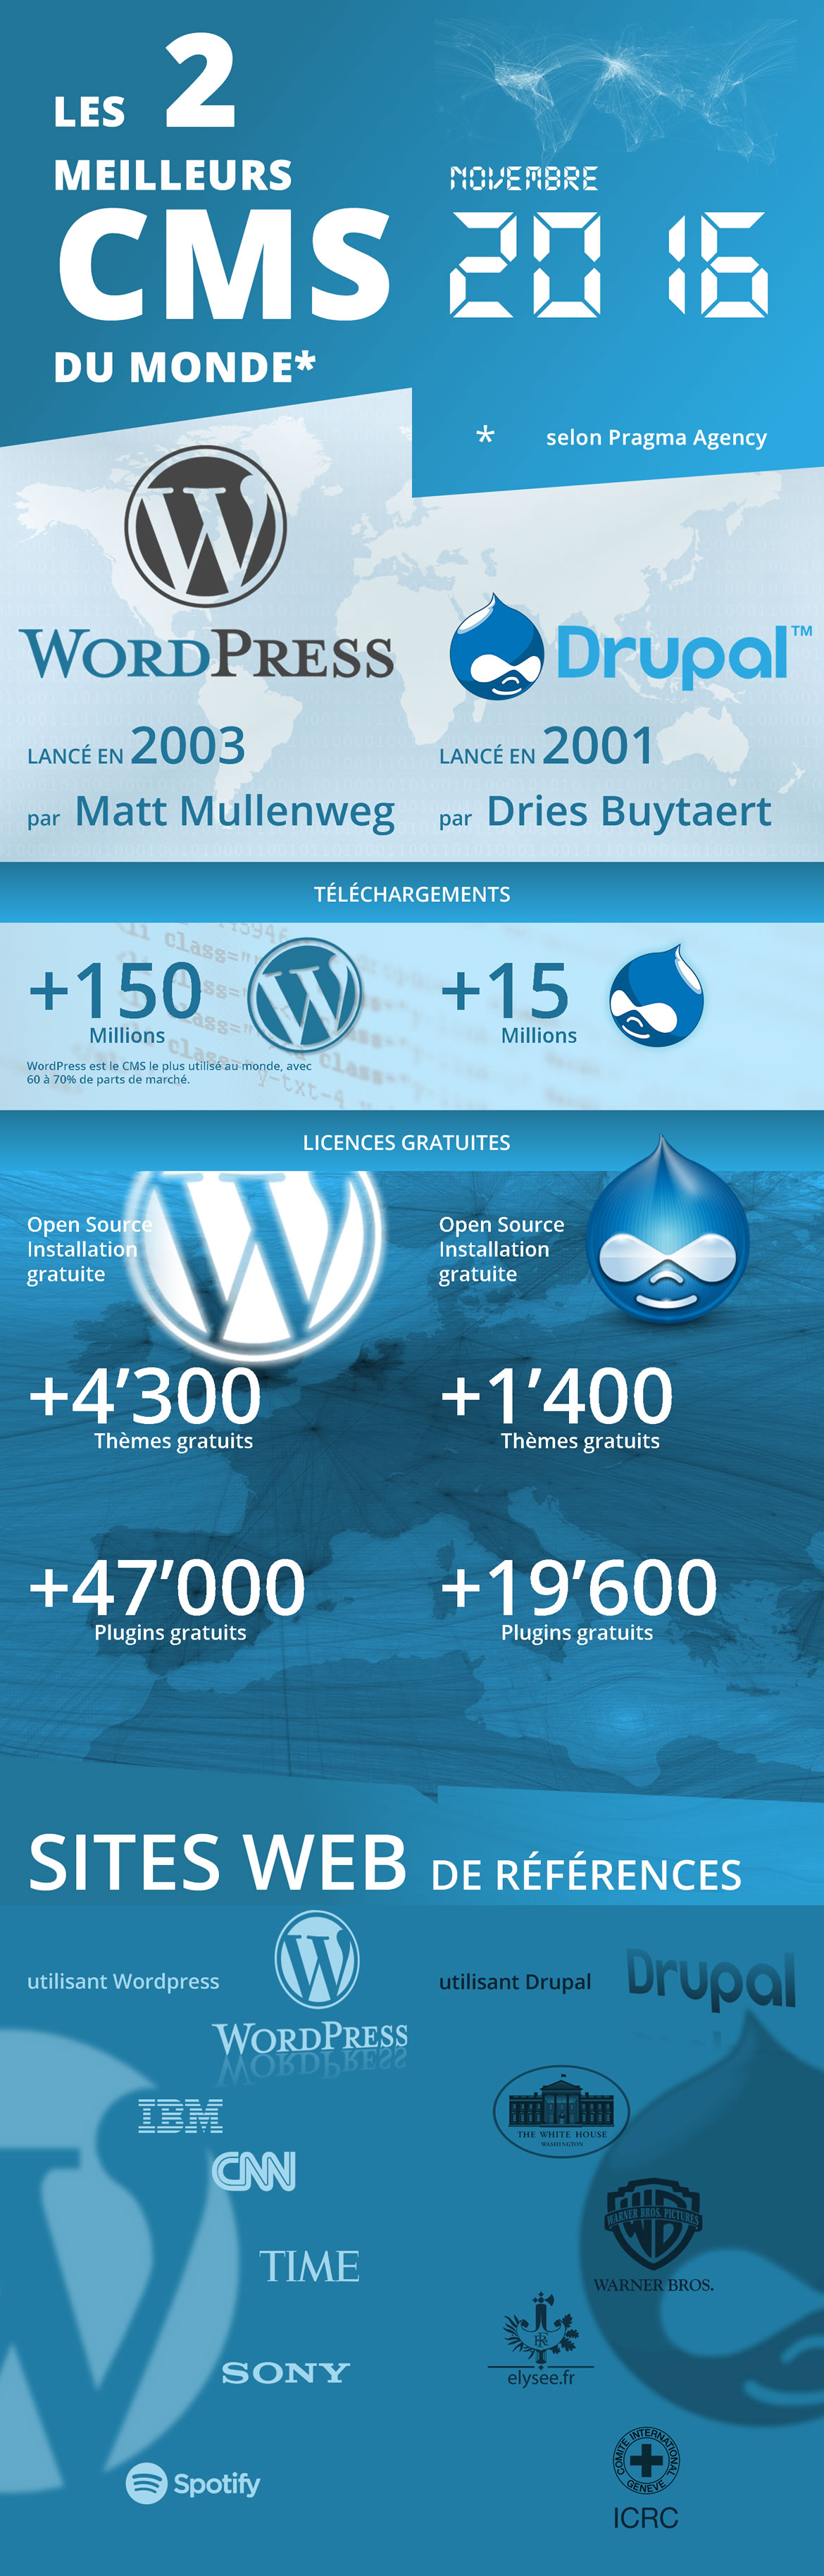 wordpressvsdrupal